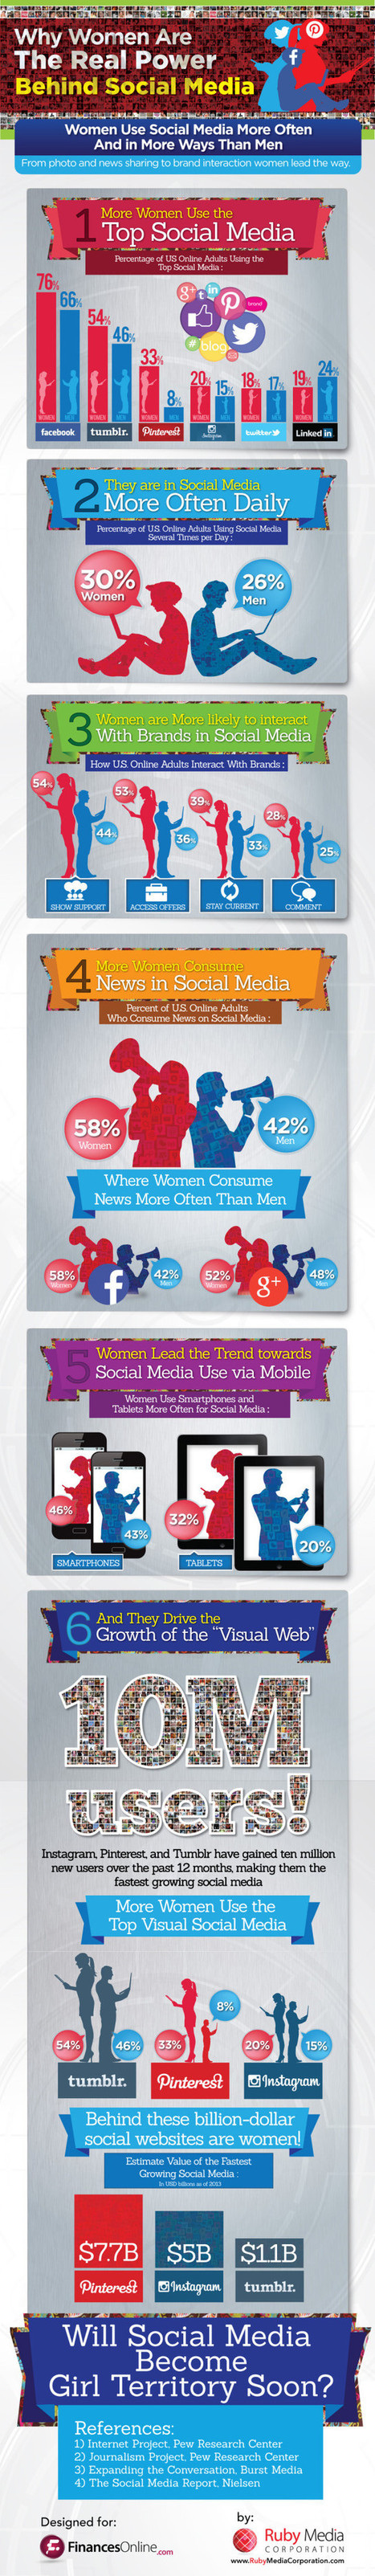 Real Power Behind Social Media? Women [Infographic] - Marketing Technology Blog | Researching & Writing Australia | Scoop.it